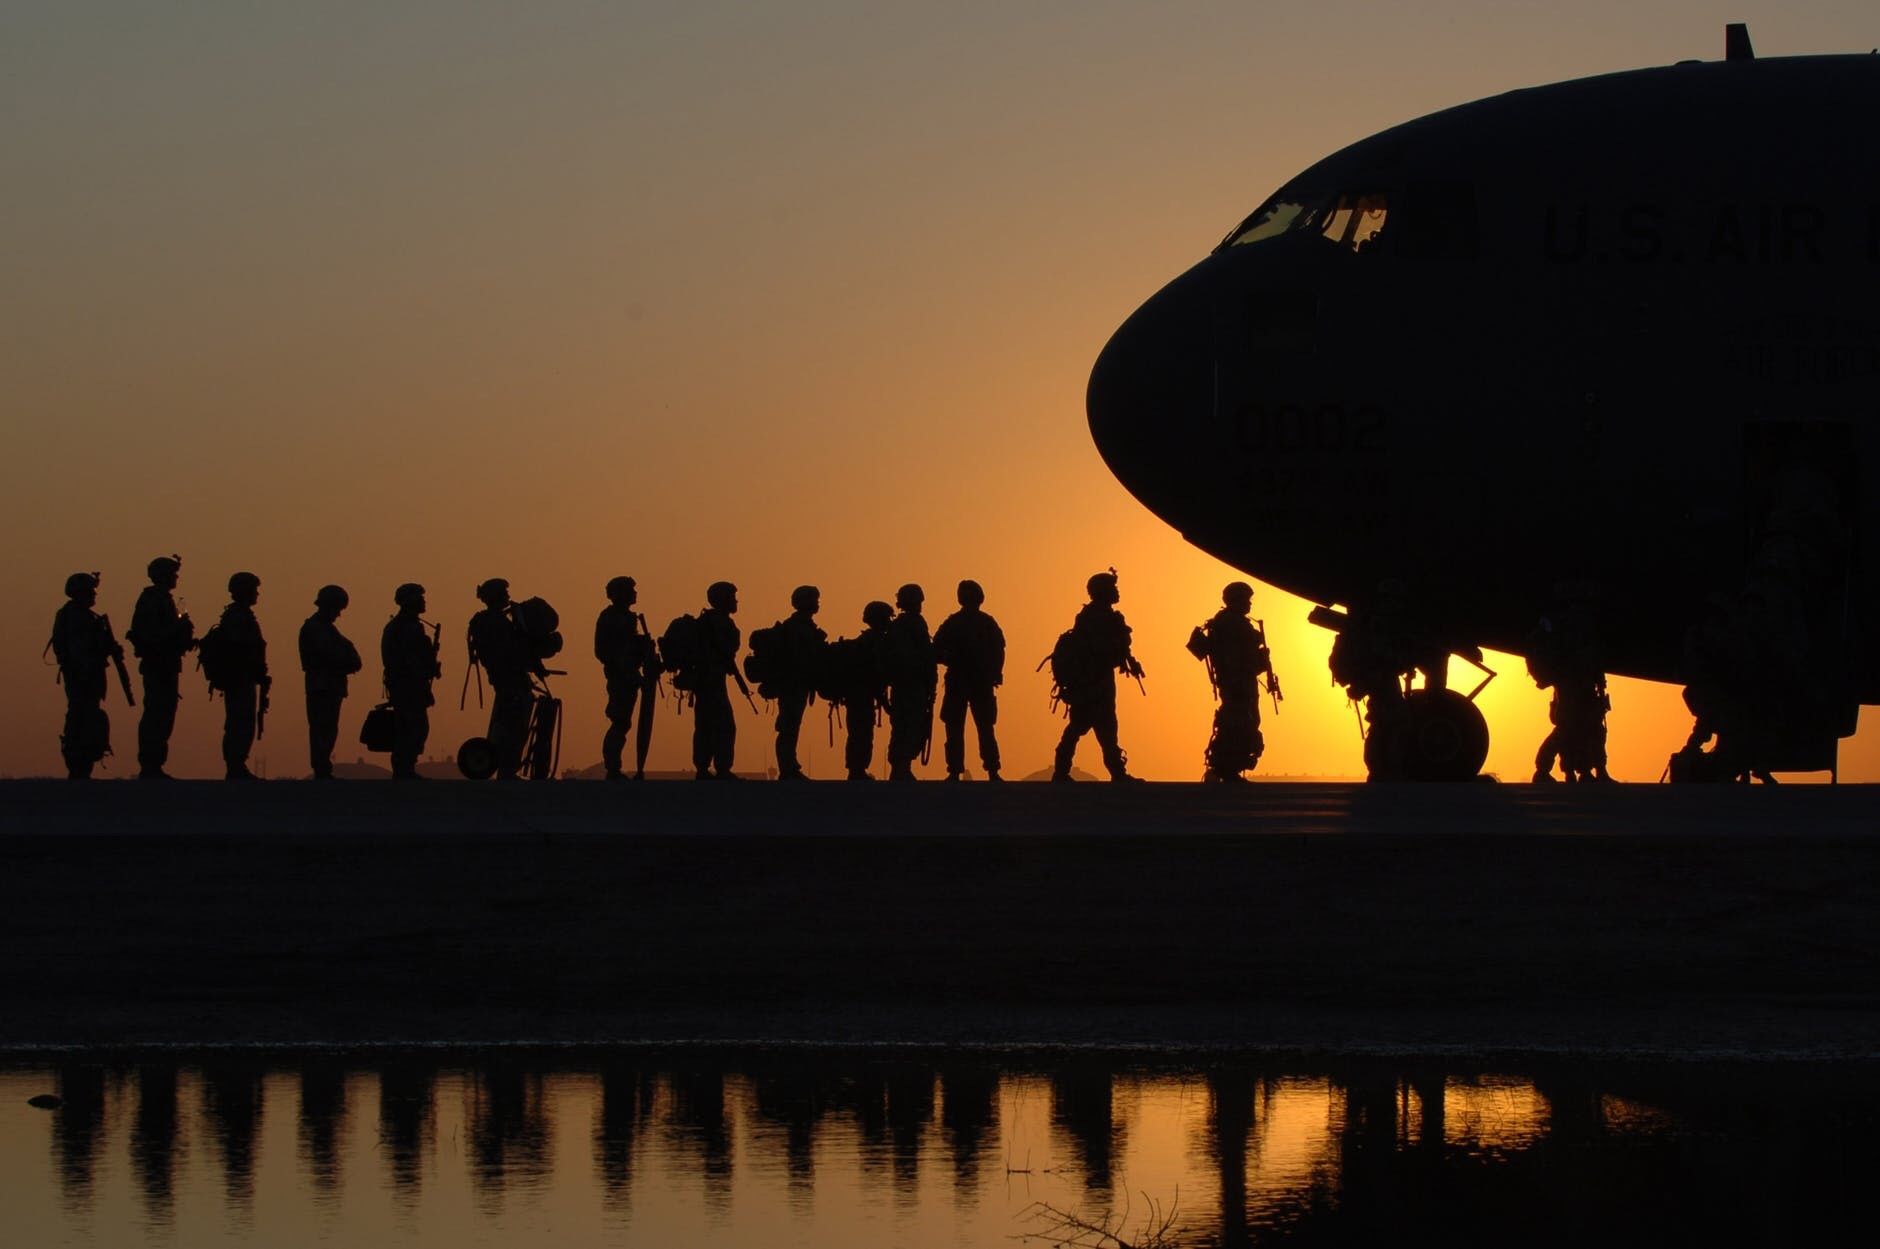 A Prayer for our Military